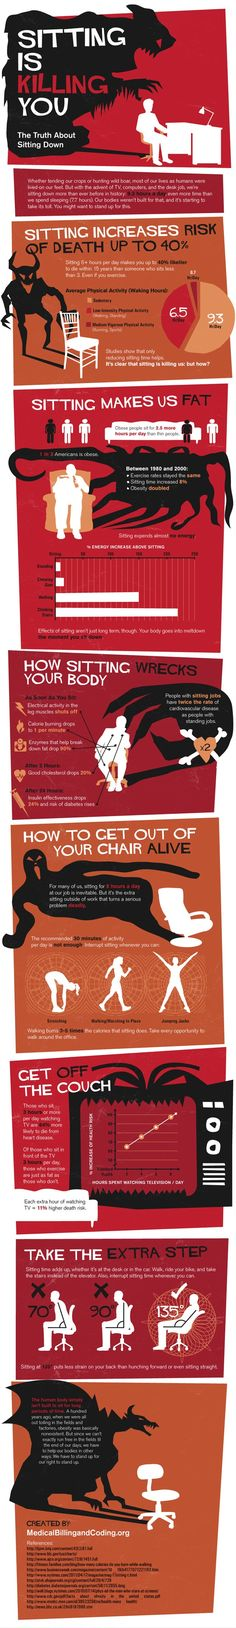 Sitting more than 6 hours raises your death risk.